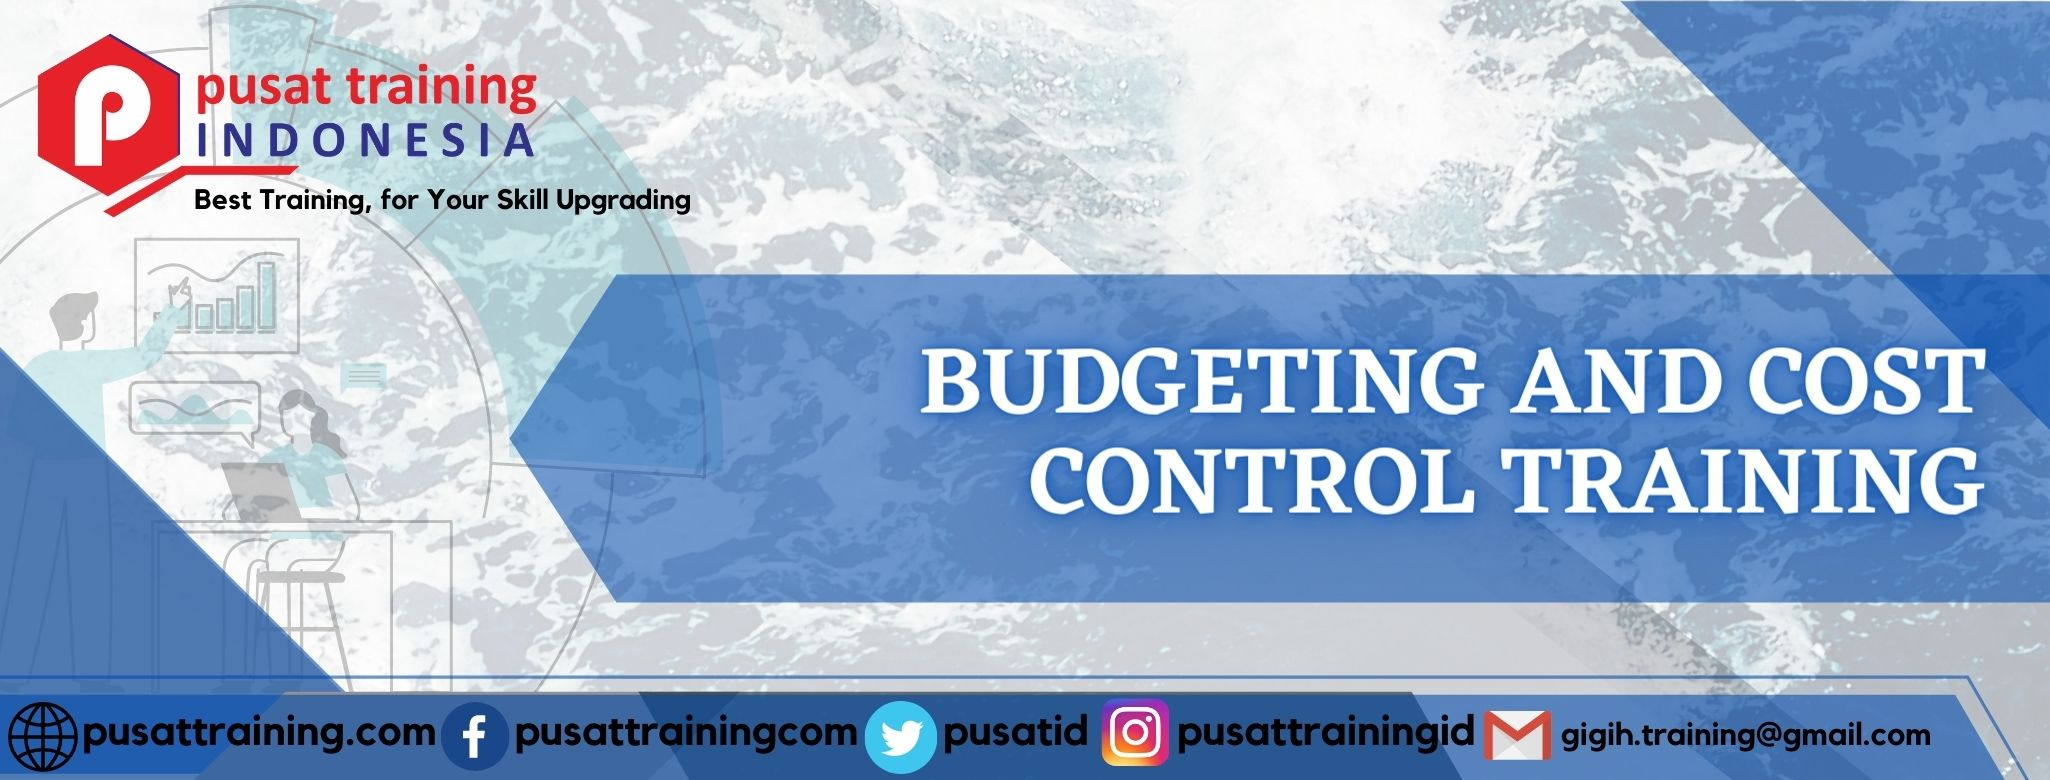 budgeting-and-cost-control-training